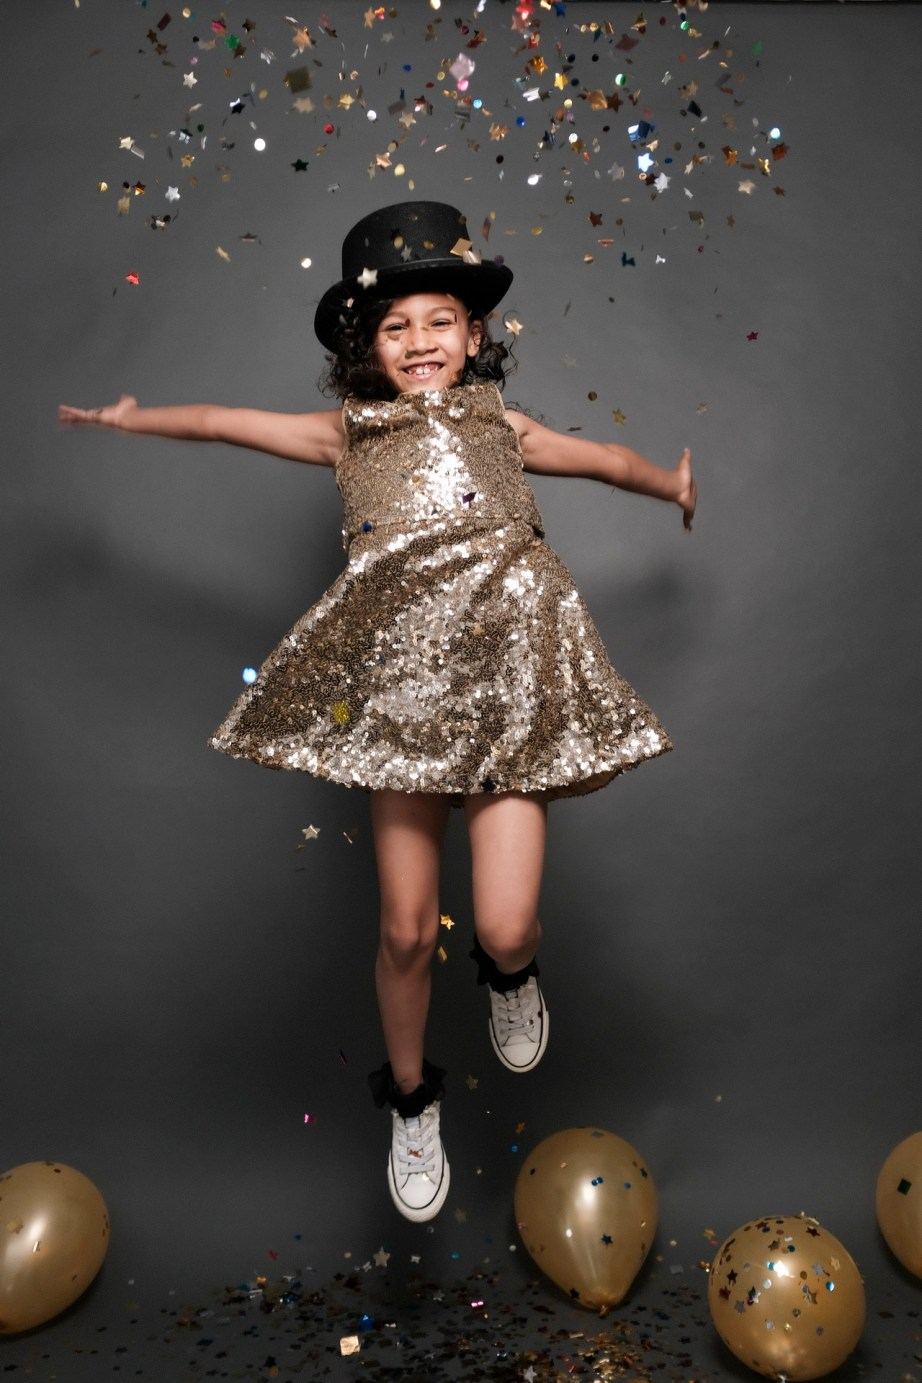 top kids childrens photographer studio orange county 11 nicole Caldwell